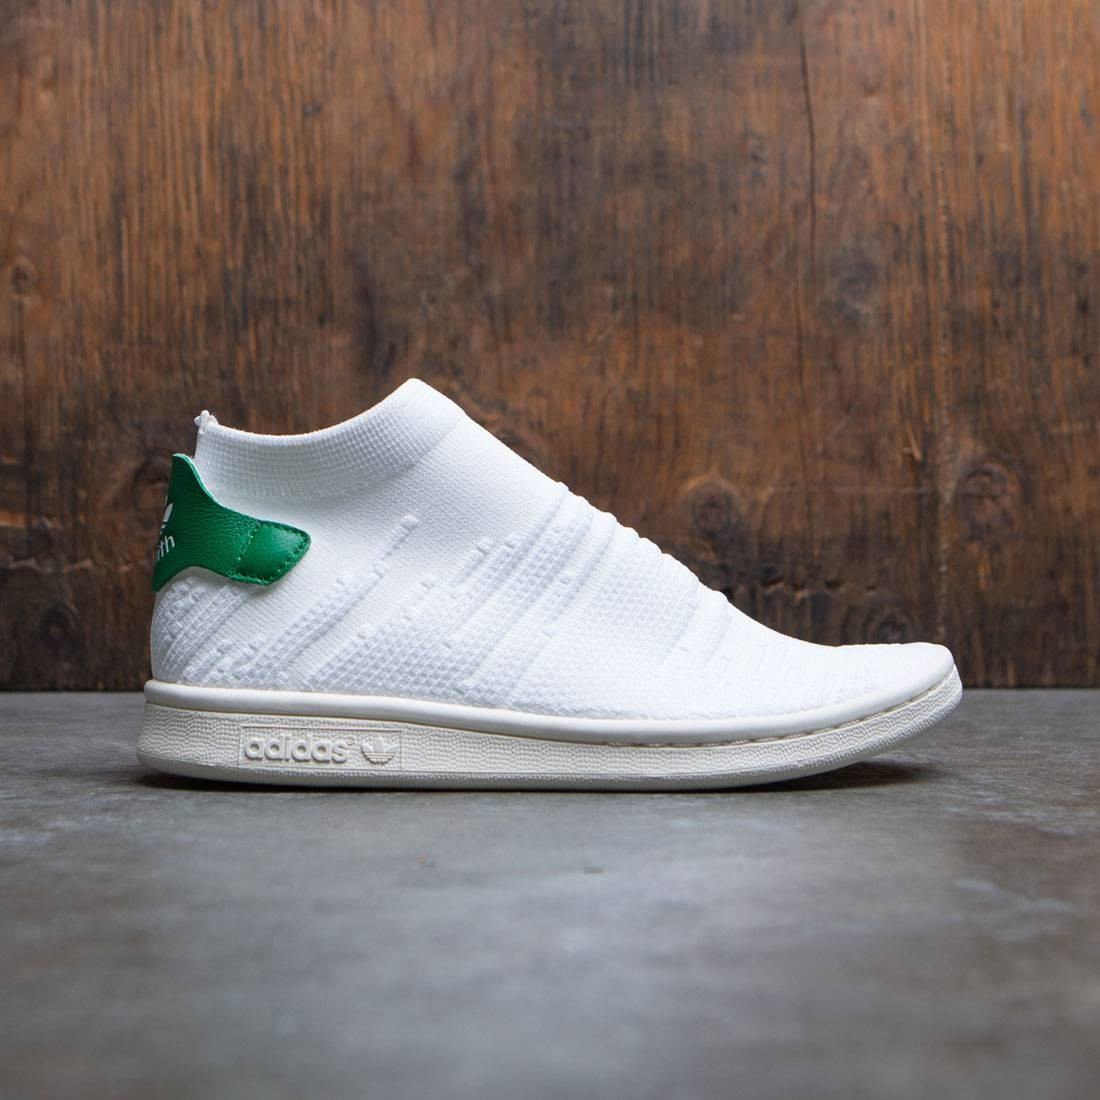 preámbulo facil de manejar Cualquier  Adidas Women Stan Smith Sock Primeknit W white footwear white green